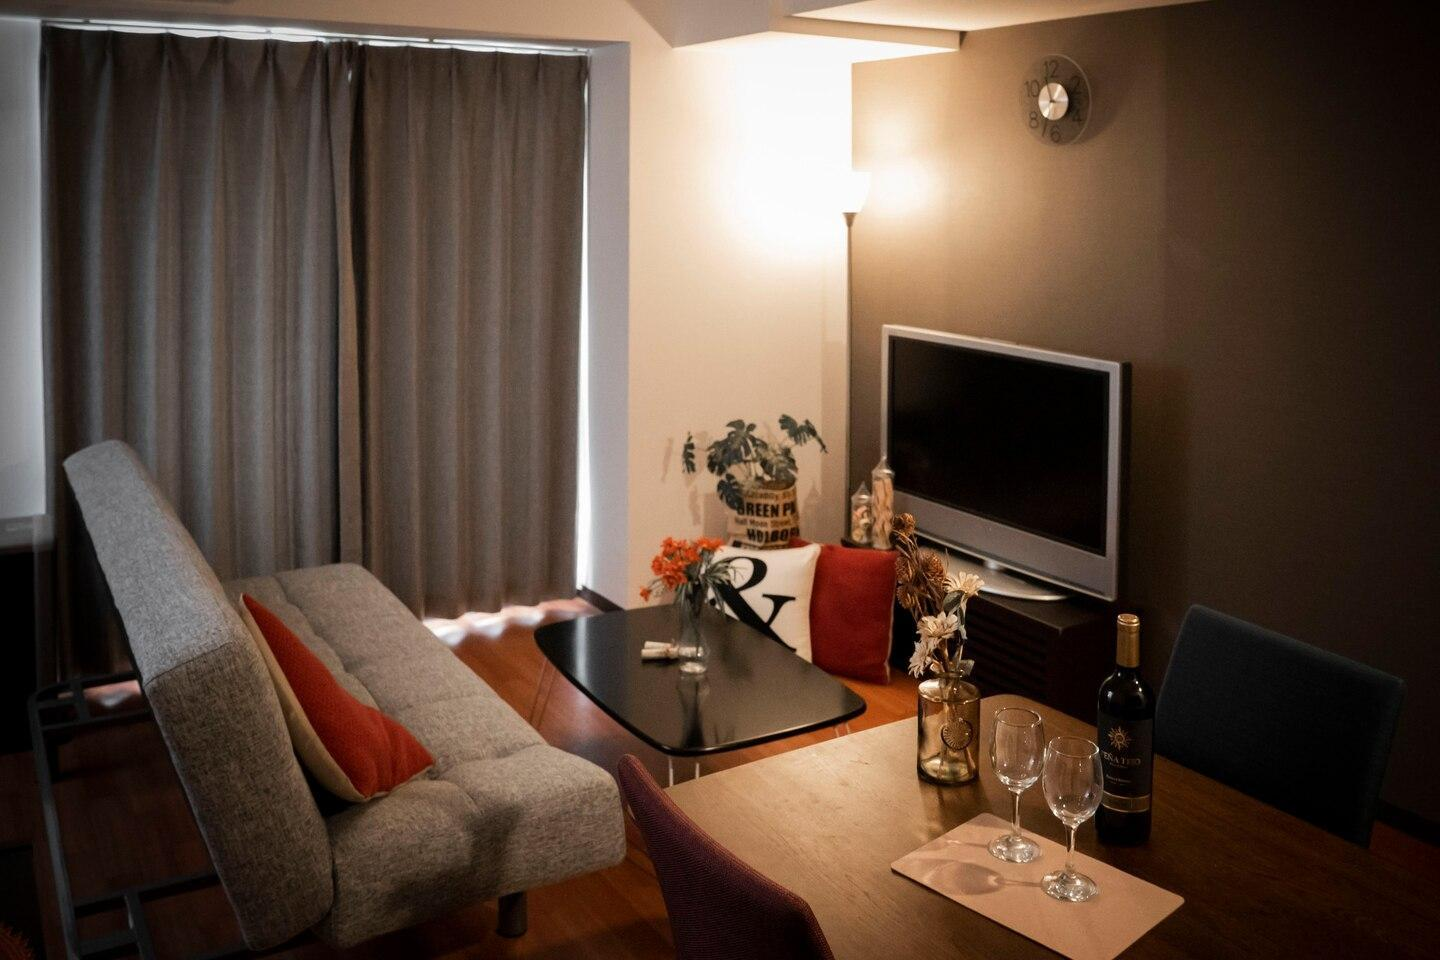 BH901  Discount  Well Decorated Apt In SAPPORO